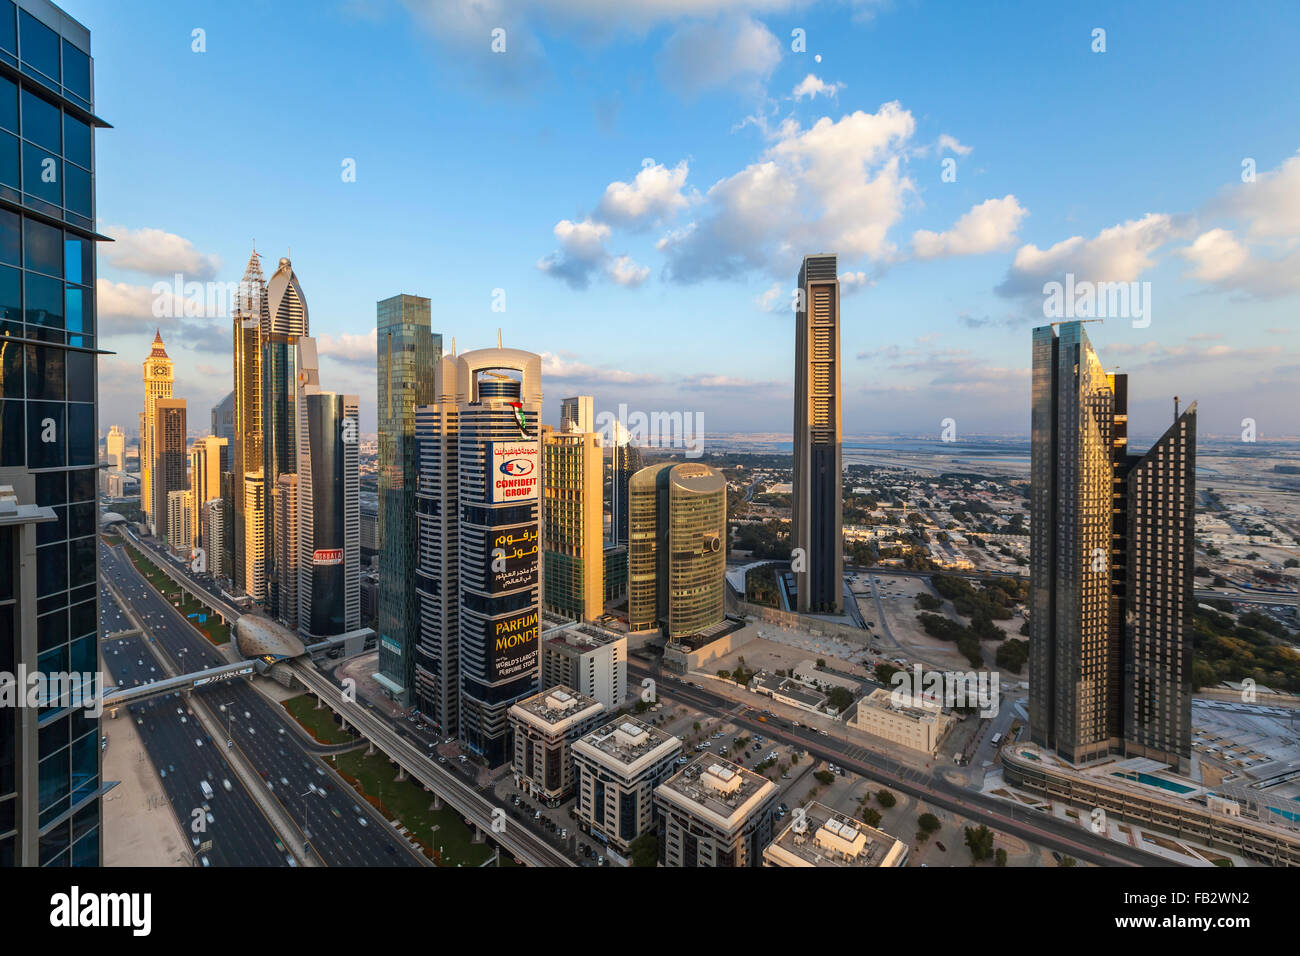 United Arab Emirates, Dubai, Sheikh Zayed Rd, traffic and new high rise buildings along Dubai's main road - Stock Image